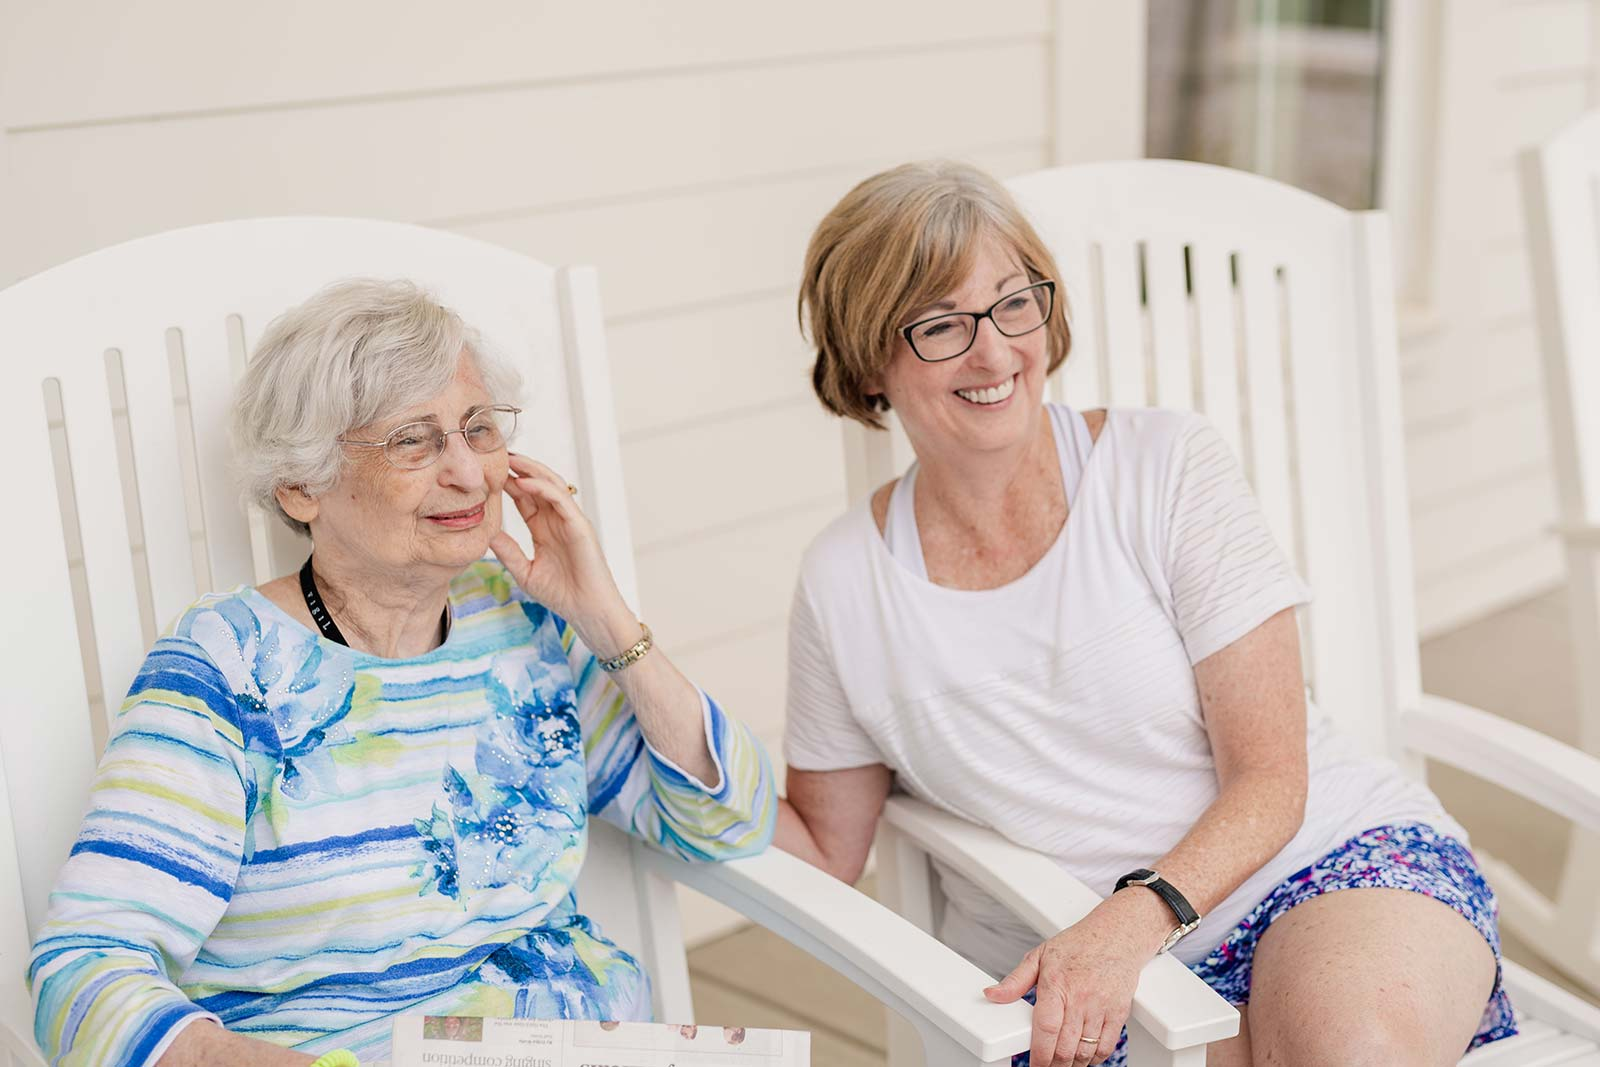 What Are The Signs That An Aging Parent Needs Help?